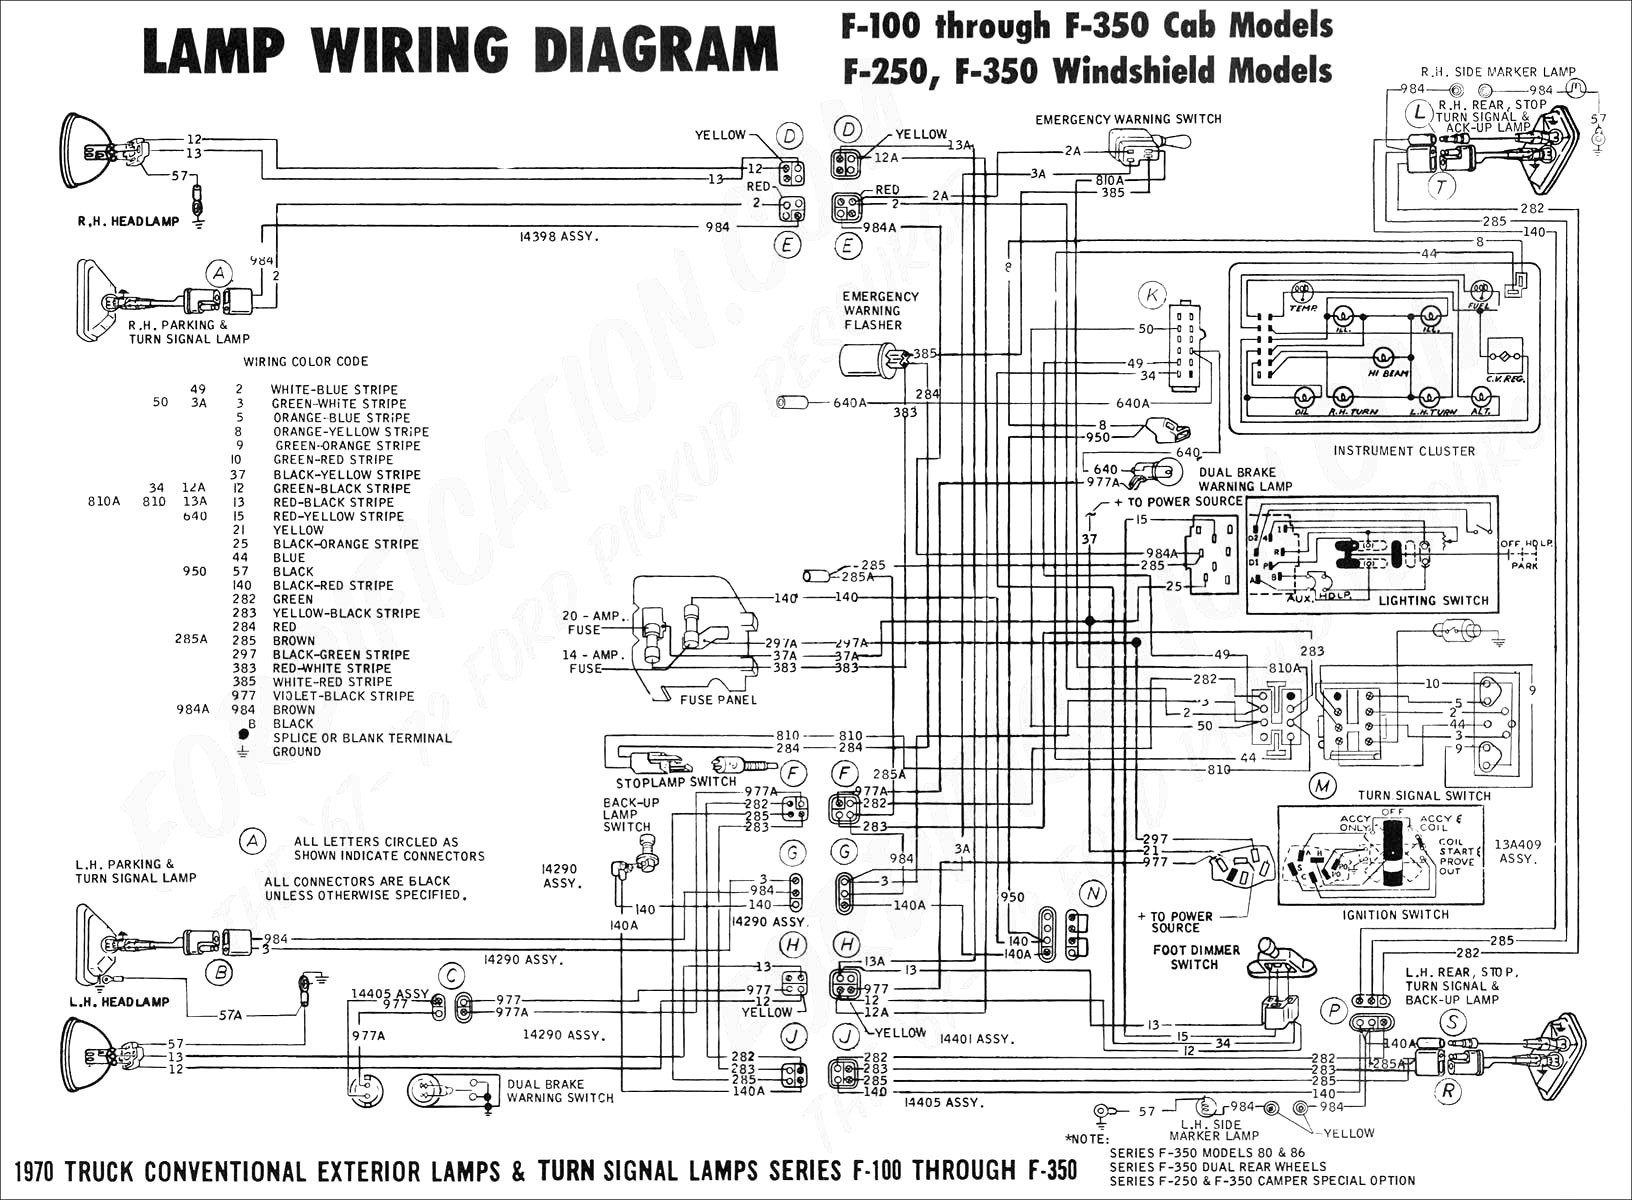 diagram] 2015 ford super duty trailer wiring diagram full version hd  quality wiring diagram - thoughtscheme.siggy2000.de  thoughtscheme.siggy2000.de